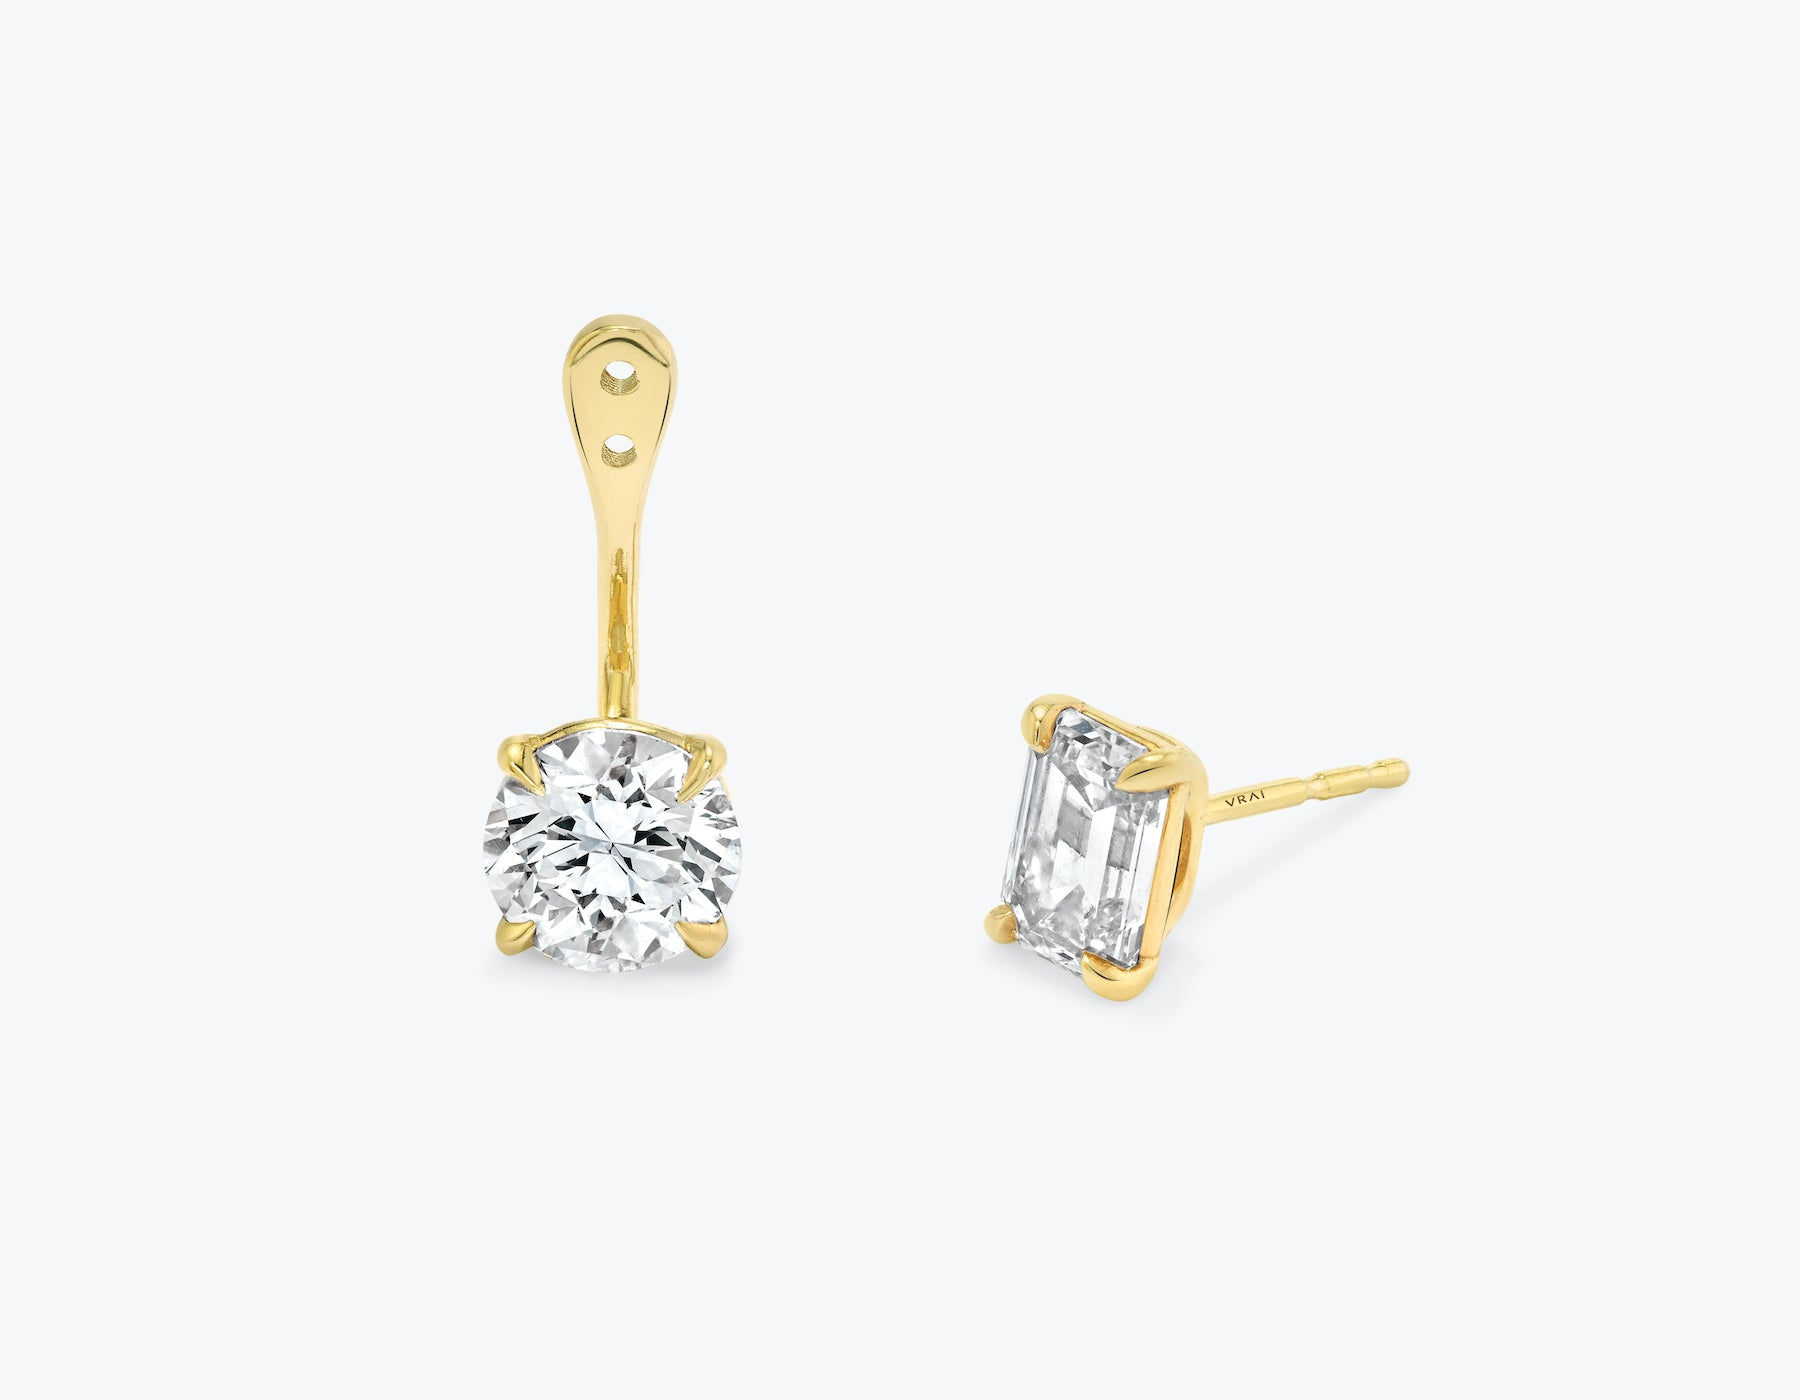 Vrai solitaire round brilliant diamond drop ear jackets made in 14k solid gold with sustainably created diamonds with round solitaire diamond stud, 14K Yellow Gold